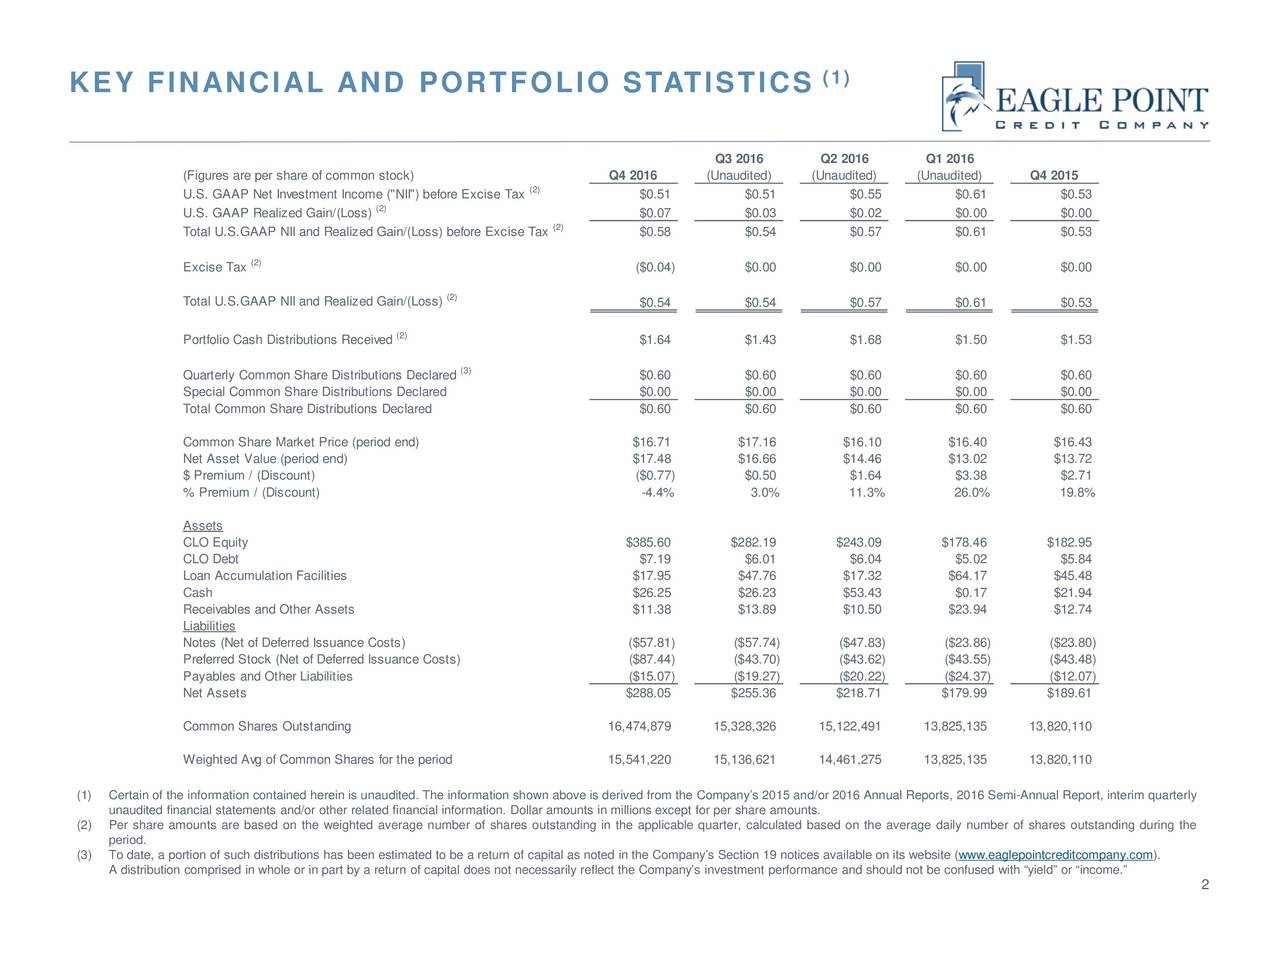 "Q3 2016 Q2 2016 Q1 2016 (Figures are per share of common stock) Q4 2016 (Unaudited) (Unaudited) (Unaudited) Q4 2015 U.S. GAAP Net Investment Income (""NII"") before Excise Tax(2) $0.51 $0.51 $0.55 $0.61 $0.53 (2) U.S. GAAP Realized Gain/(Loss) $0.07 $0.03 $0.02 $0.00 $0.00 Total U.S.GAAP NII and Realized Gain/(Loss) before Excise Tax(2) $0.58 $0.54 $0.57 $0.61 $0.53 Excise Tax (2) ($0.04) $0.00 $0.00 $0.00 $0.00 (2) Total U.S.GAAP NII and Realized Gain/(Loss) $0.54 $0.54 $0.57 $0.61 $0.53 (2) Portfolio Cash Distributions Received $1.64 $1.43 $1.68 $1.50 $1.53 (3) Quarterly Common Share Distributions Declared $0.60 $0.60 $0.60 $0.60 $0.60 Special Common Share Distributions Declared $0.00 $0.00 $0.00 $0.00 $0.00 Total Common Share Distributions Declared $0.60 $0.60 $0.60 $0.60 $0.60 Common Share Market Price (period end) $16.71 $17.16 $16.10 $16.40 $16.43 Net Asset Value (period end) $17.48 $16.66 $14.46 $13.02 $13.72 $ Premium / (Discount) ($0.77) $0.50 $1.64 $3.38 $2.71 % Premium / (Discount) -4.4% 3.0% 11.3% 26.0% 19.8% Assets CLO Equity $385.60 $282.19 $243.09 $178.46 $182.95 CLO Debt $7.19 $6.01 $6.04 $5.02 $5.84 Loan Accumulation Facilities $17.95 $47.76 $17.32 $64.17 $45.48 Cash $26.25 $26.23 $53.43 $0.17 $21.94 Receivables and Other Assets $11.38 $13.89 $10.50 $23.94 $12.74 Liabilities Notes (Net of Deferred Issuance Costs) ($57.81) ($57.74) ($47.83) ($23.86) ($23.80) Preferred Stock (Net of Deferred Issuance Costs) ($87.44) ($43.70) ($43.62) ($43.55) ($43.48) Payables and Other Liabilities ($15.07) ($19.27) ($20.22) ($24.37) ($12.07) Net Assets $288.05 $255.36 $218.71 $179.99 $189.61 Common Shares Outstanding 16,474,879 15,328,326 15,122,491 13,825,135 13,820,110 Weighted Avg of Common Shares for the period 15,541,220 15,136,621 14,461,275 13,825,135 13,820,110 (1) Certain of the information contained herein is unaudited. The information shown above is derived from the Companys 2015 and/or 2016 Annual Reports, 2016 Semi-Annual Report, interim quarterly unaudited financial statements and/or other related financial information. Dollar amounts in millions except for per share amounts. (2) Per share amounts are based on the weighted average number of shares outstanding in the applicable quarter, calculated based on the average daily number of shares outstanding during the period. (3) To date, a portion of such distributions has been estimated to be a return of capital as noted in the Companys Section 19 notices available on its website (ditcompany.com). A distribution comprised in whole or in part by a return of capital does not necessarily reflect the Companys investment performance and should not be confused with yield or income. 2"